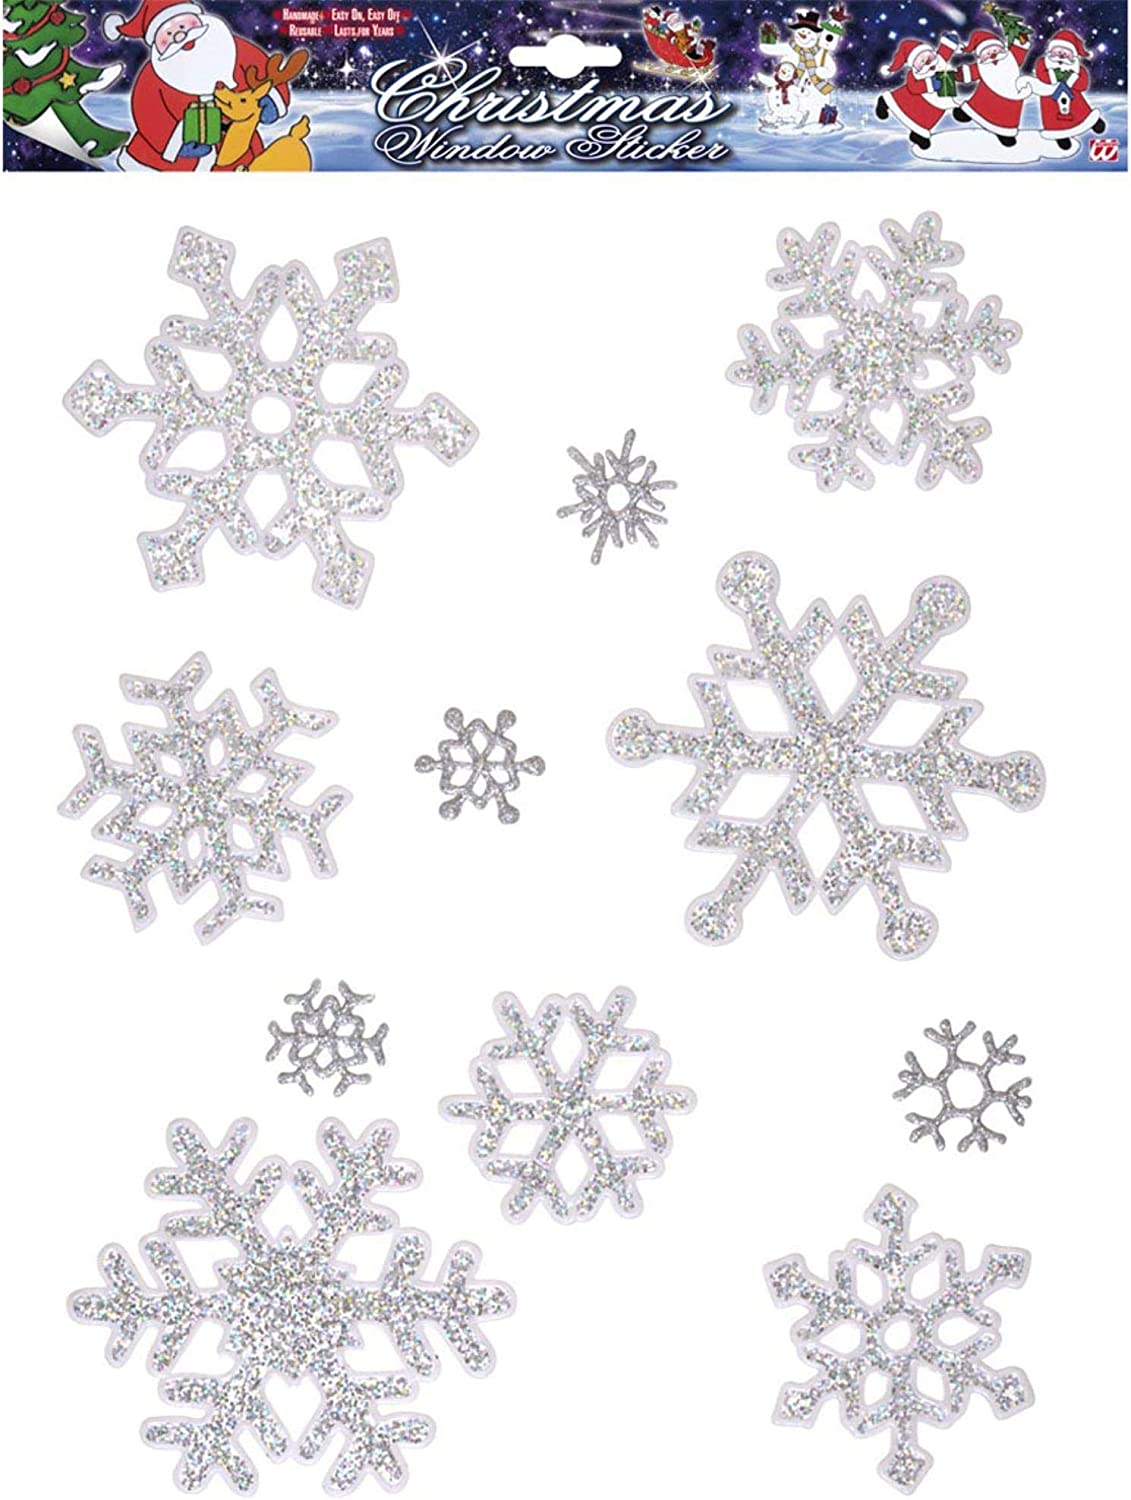 Idena 8581204 Window Picture Ice Crystals 11 Pieces Silver